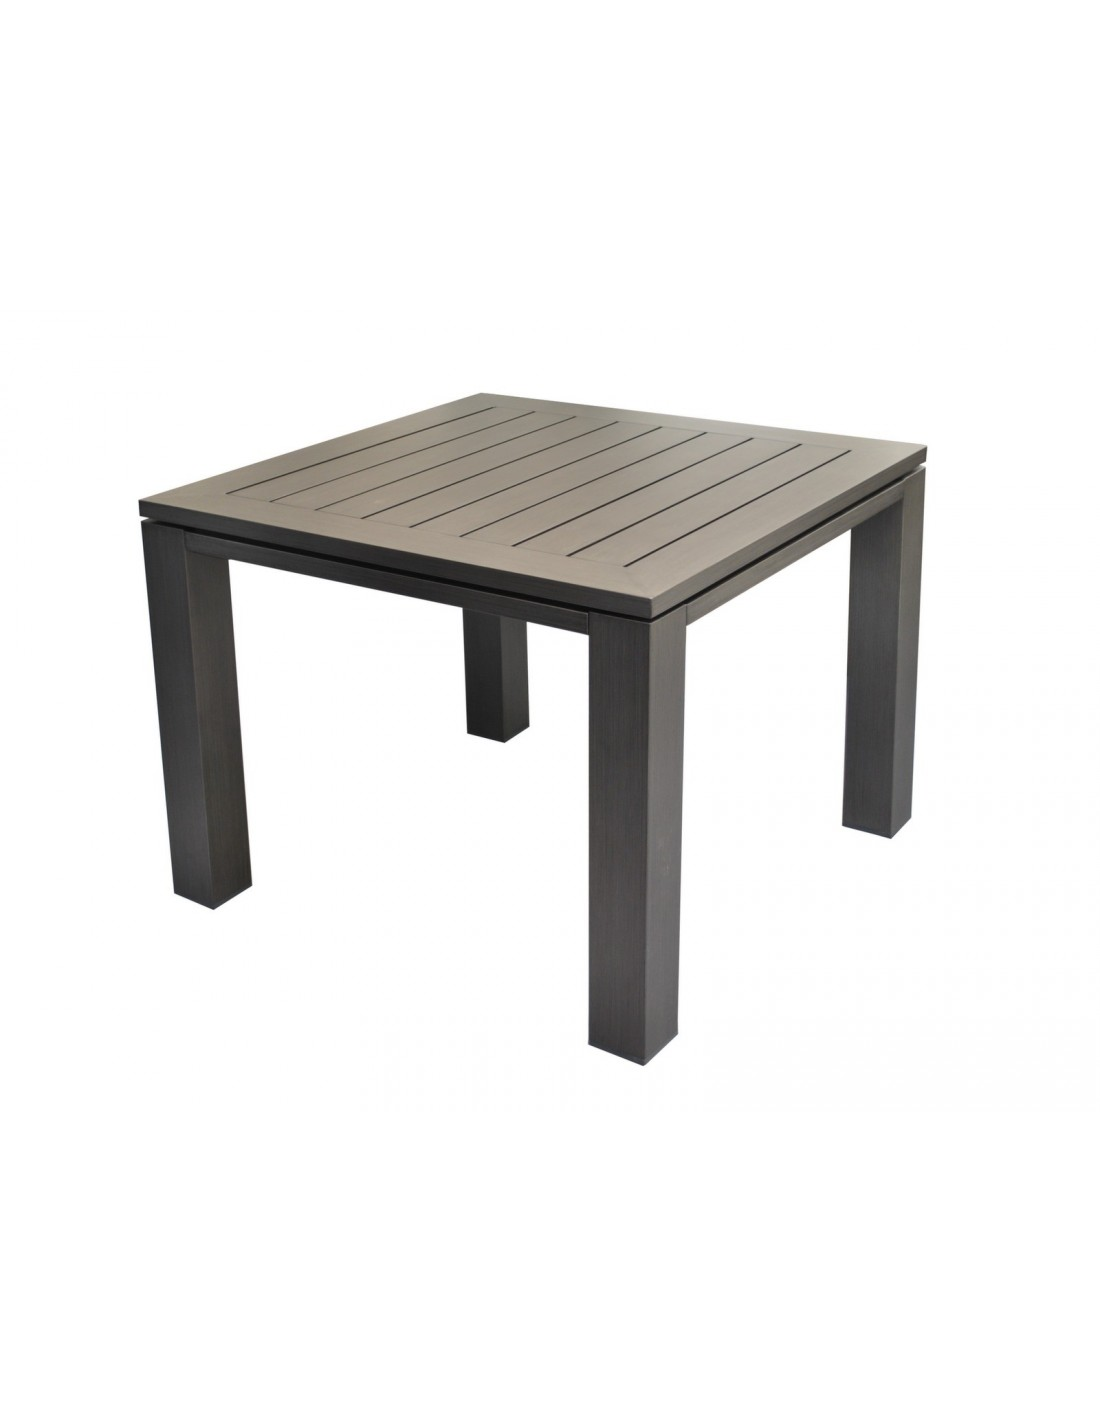 Beautiful table de jardin aluminium perforee gallery - Table jardin aluminium avec rallonge ...